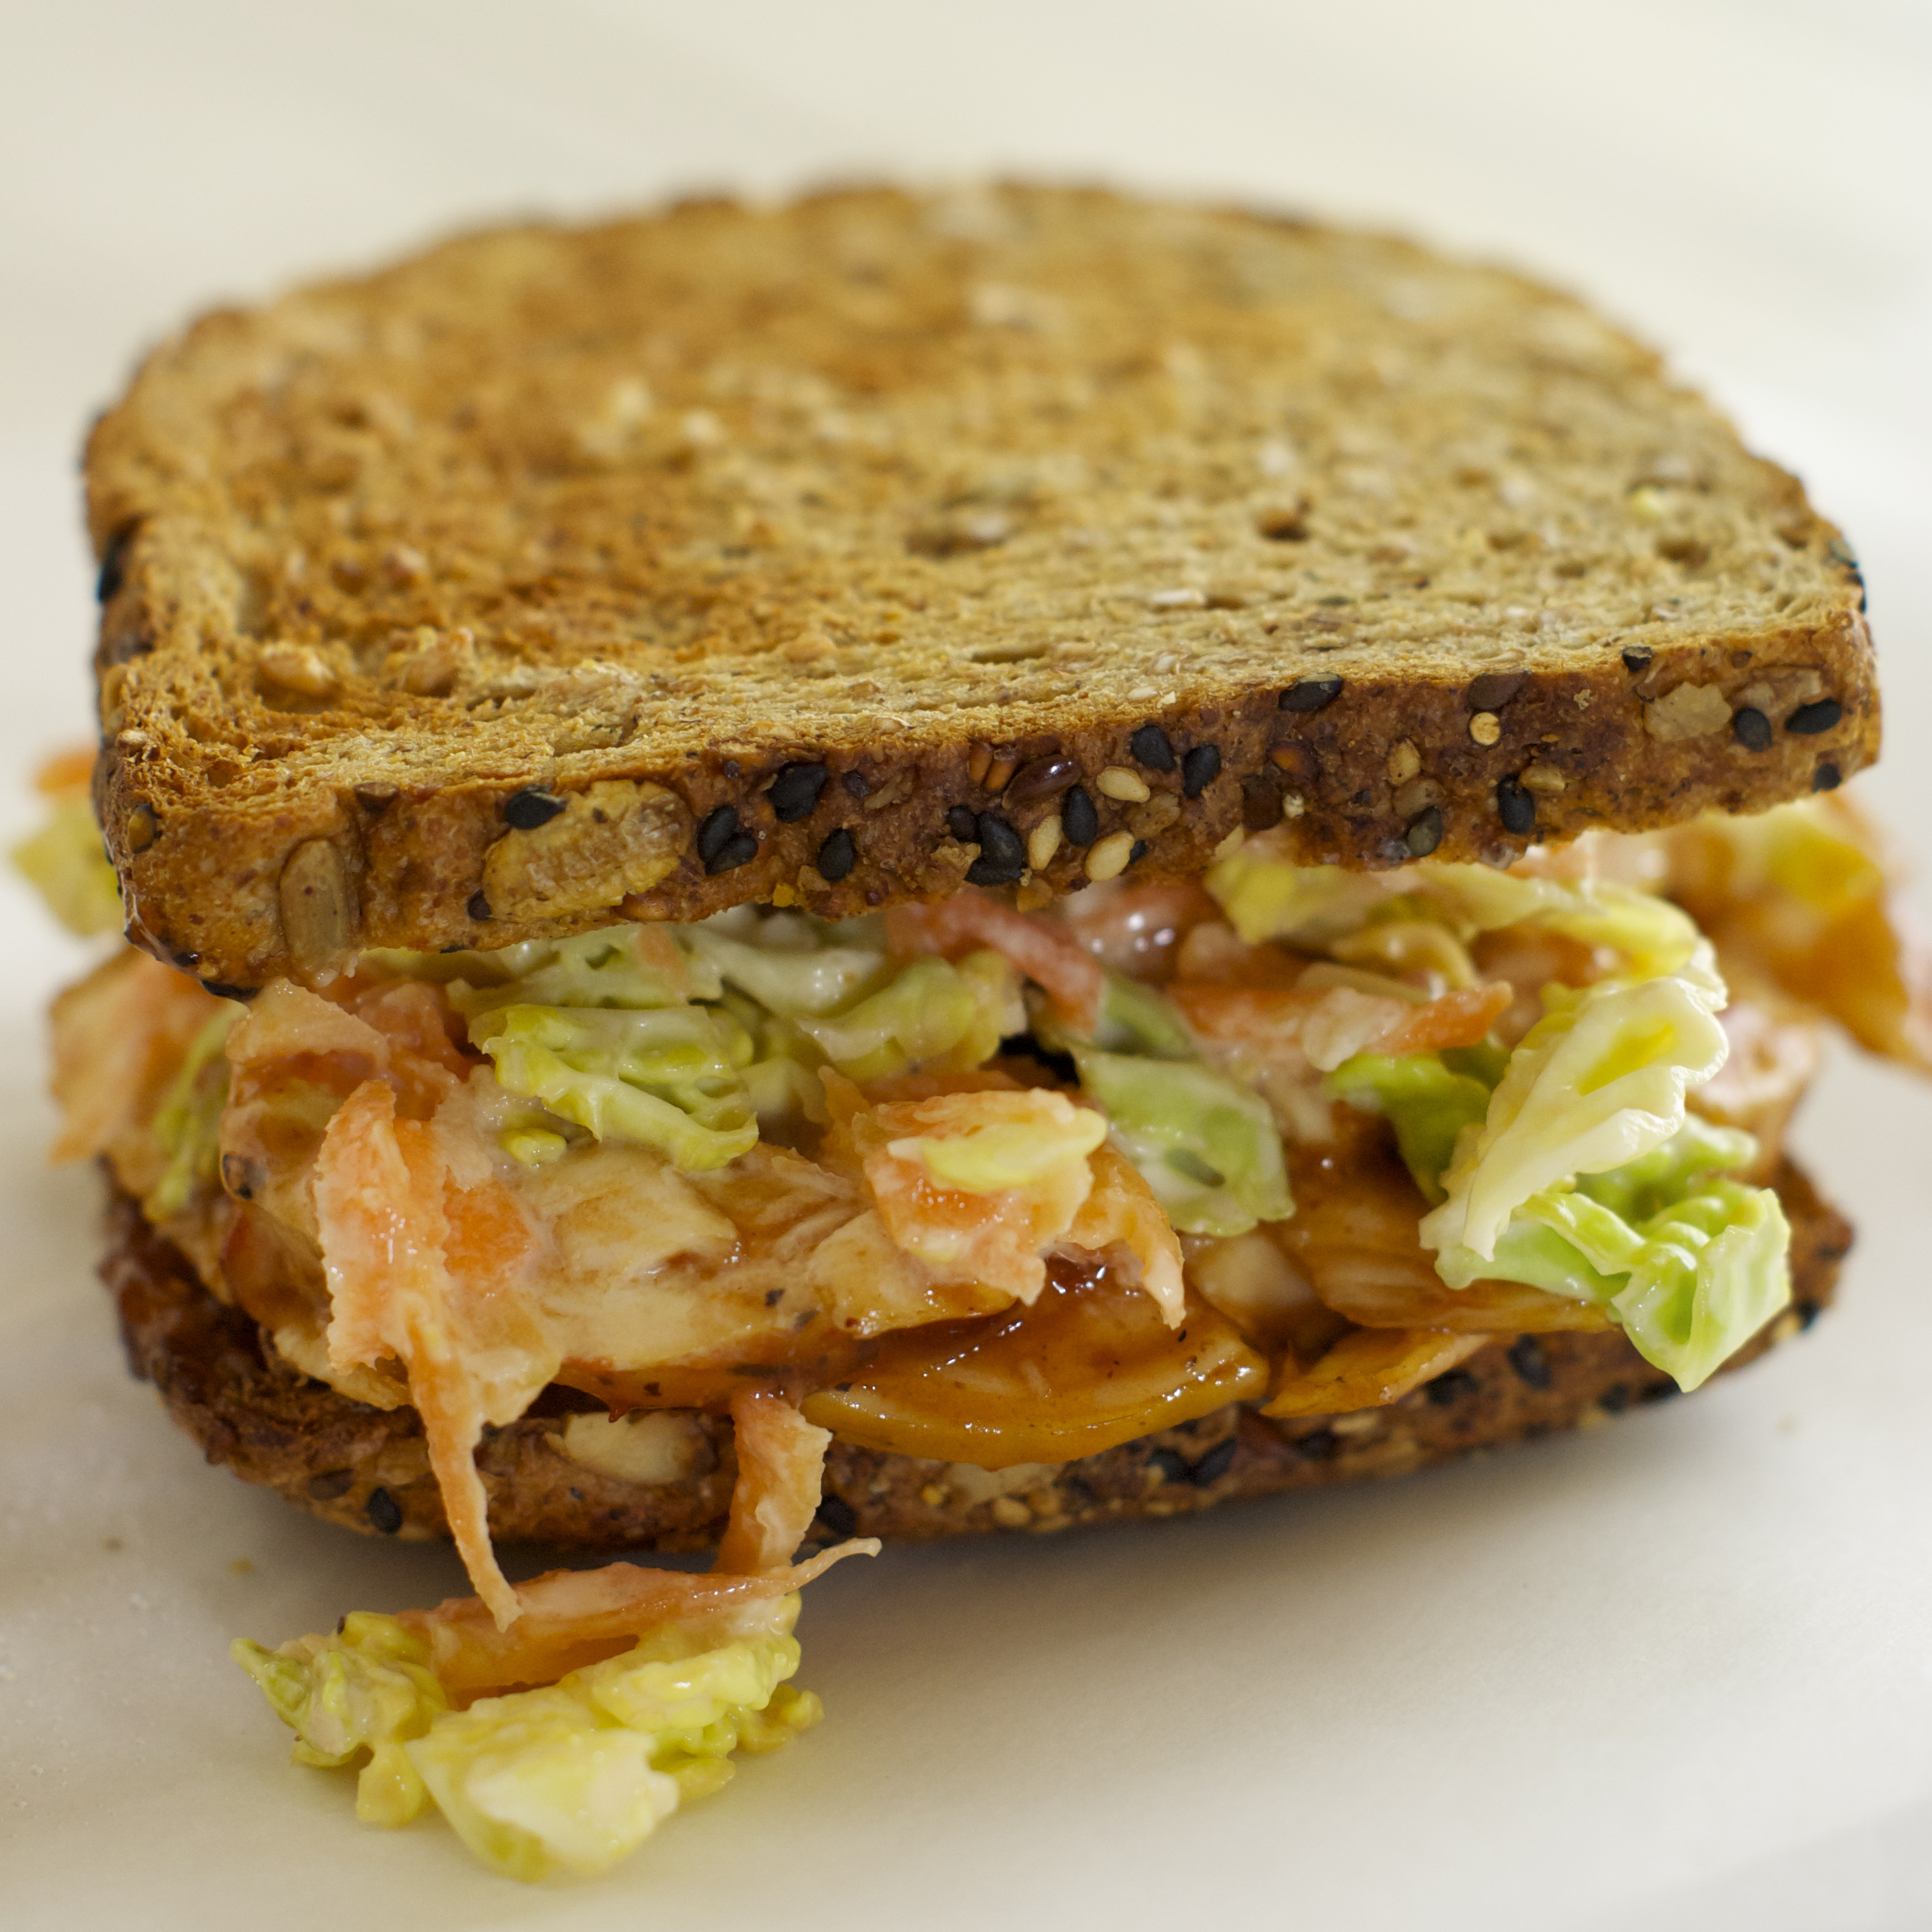 ... coleslaw recipe myrecipes pulled barbecue chicken and coleslaw